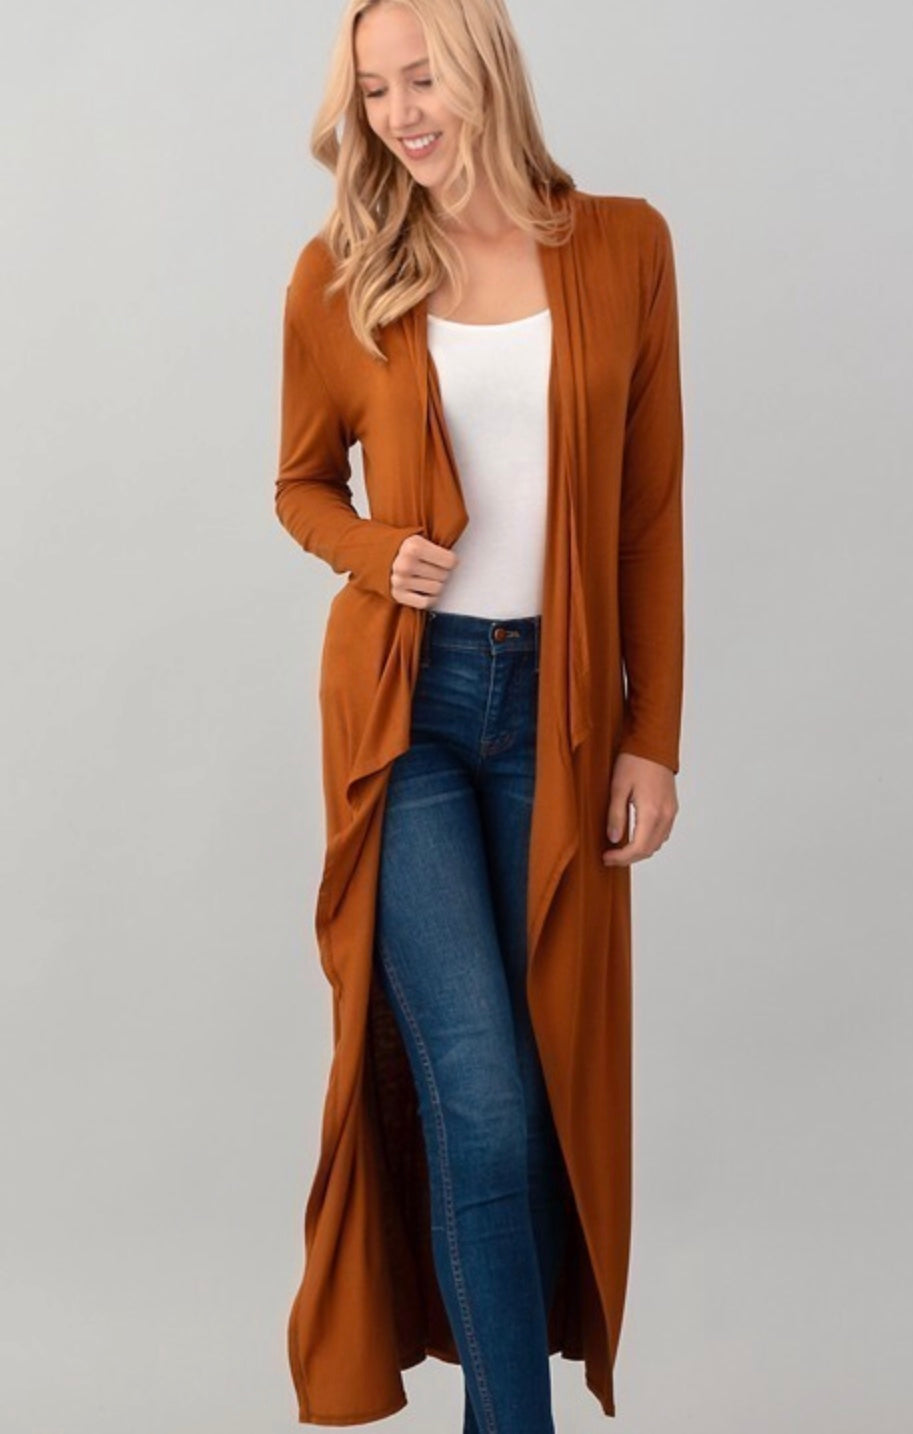 Sarah's Long sleeve Stretchy Cardigan